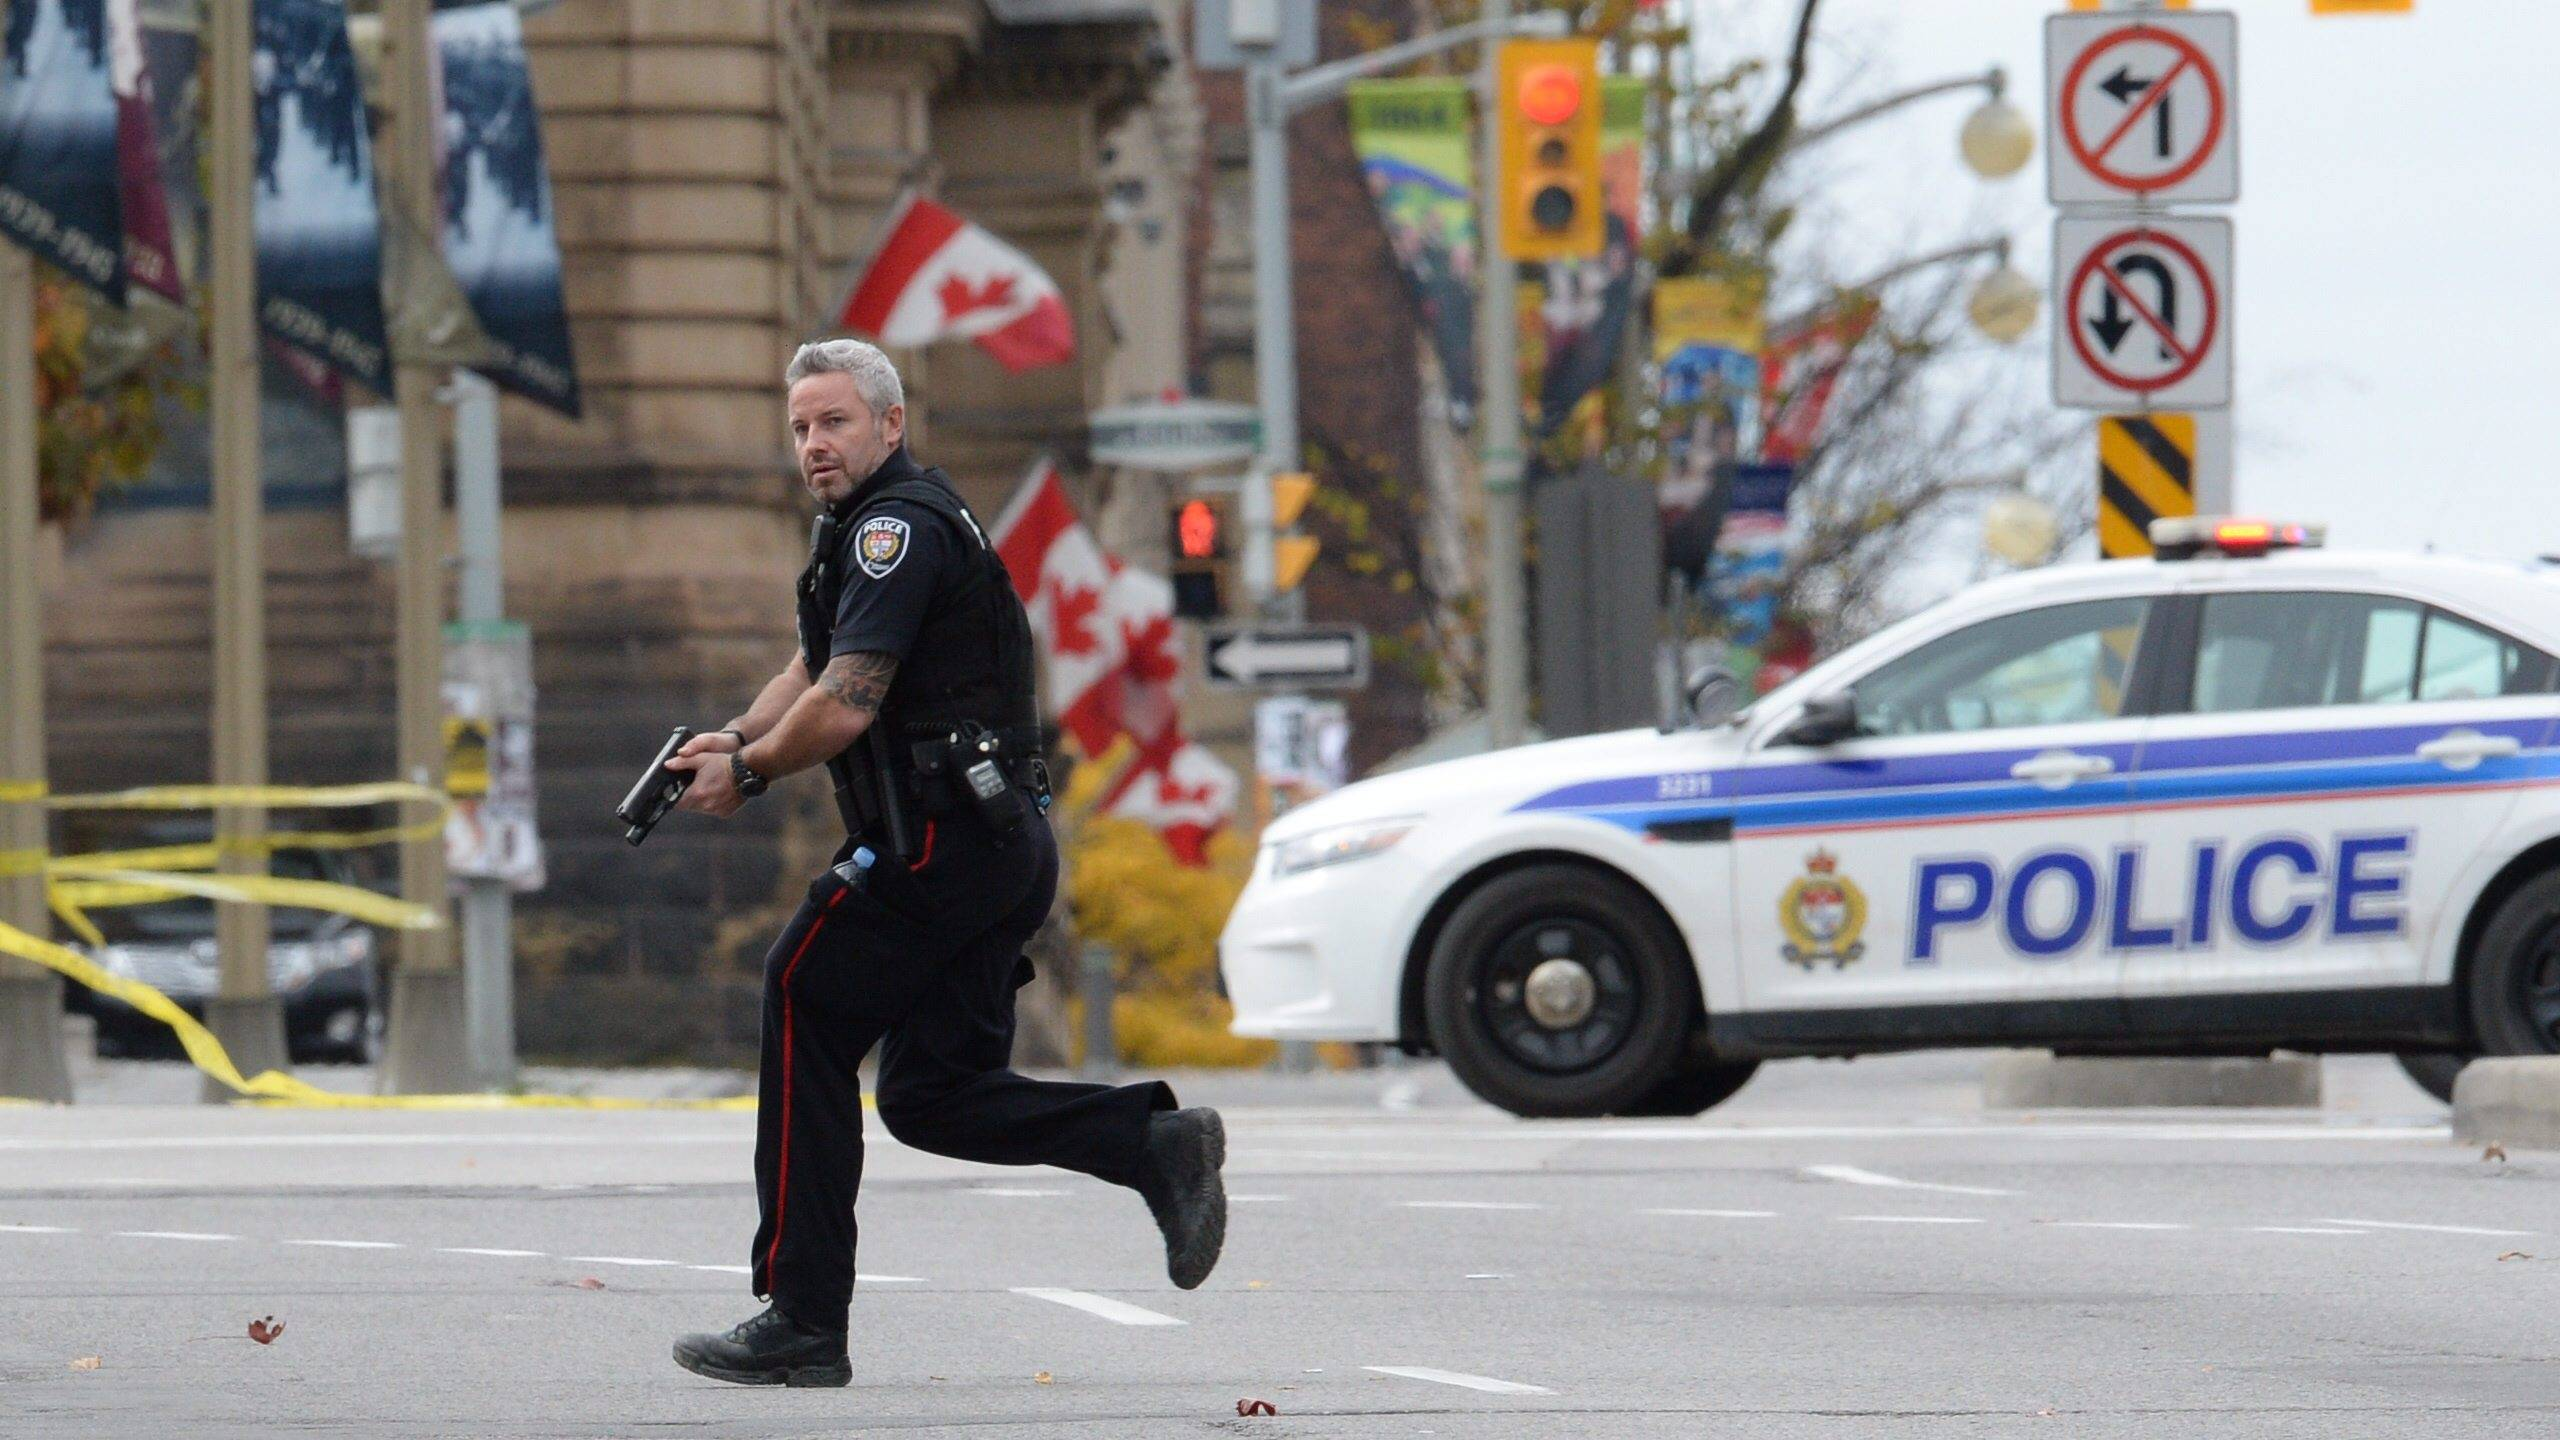 An Ottawa police officer runs with his weapon drawn outside Parliament Hill in Ottawa on Wednesday Oct. 22, 2014.